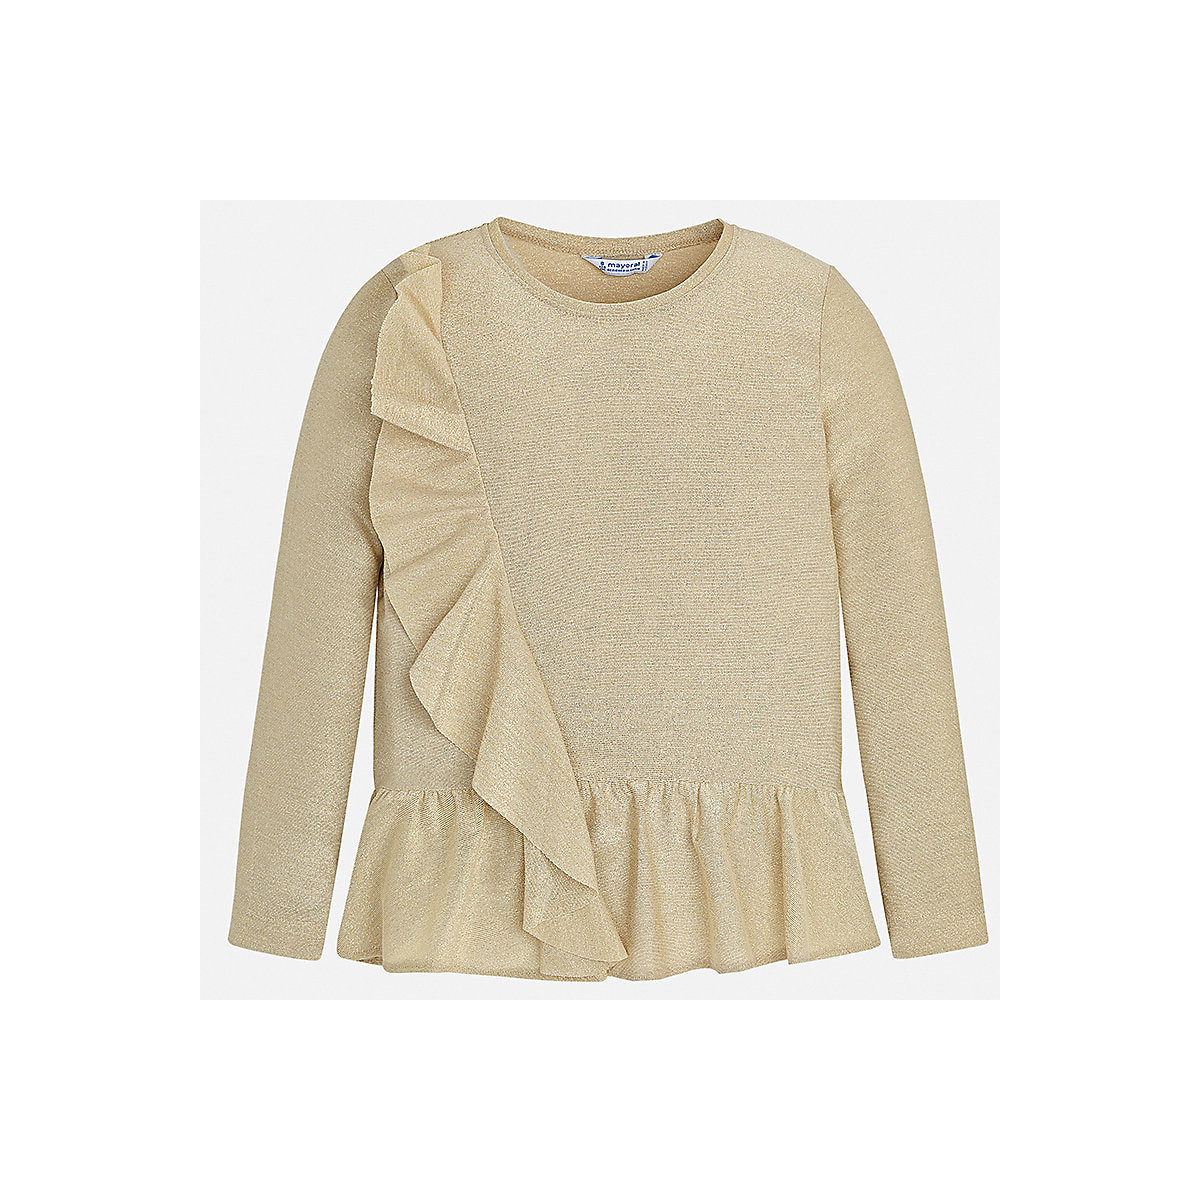 MAYORAL Blouses & Shirts 8849012 Girls Polyester  clothes baby boy children child wear